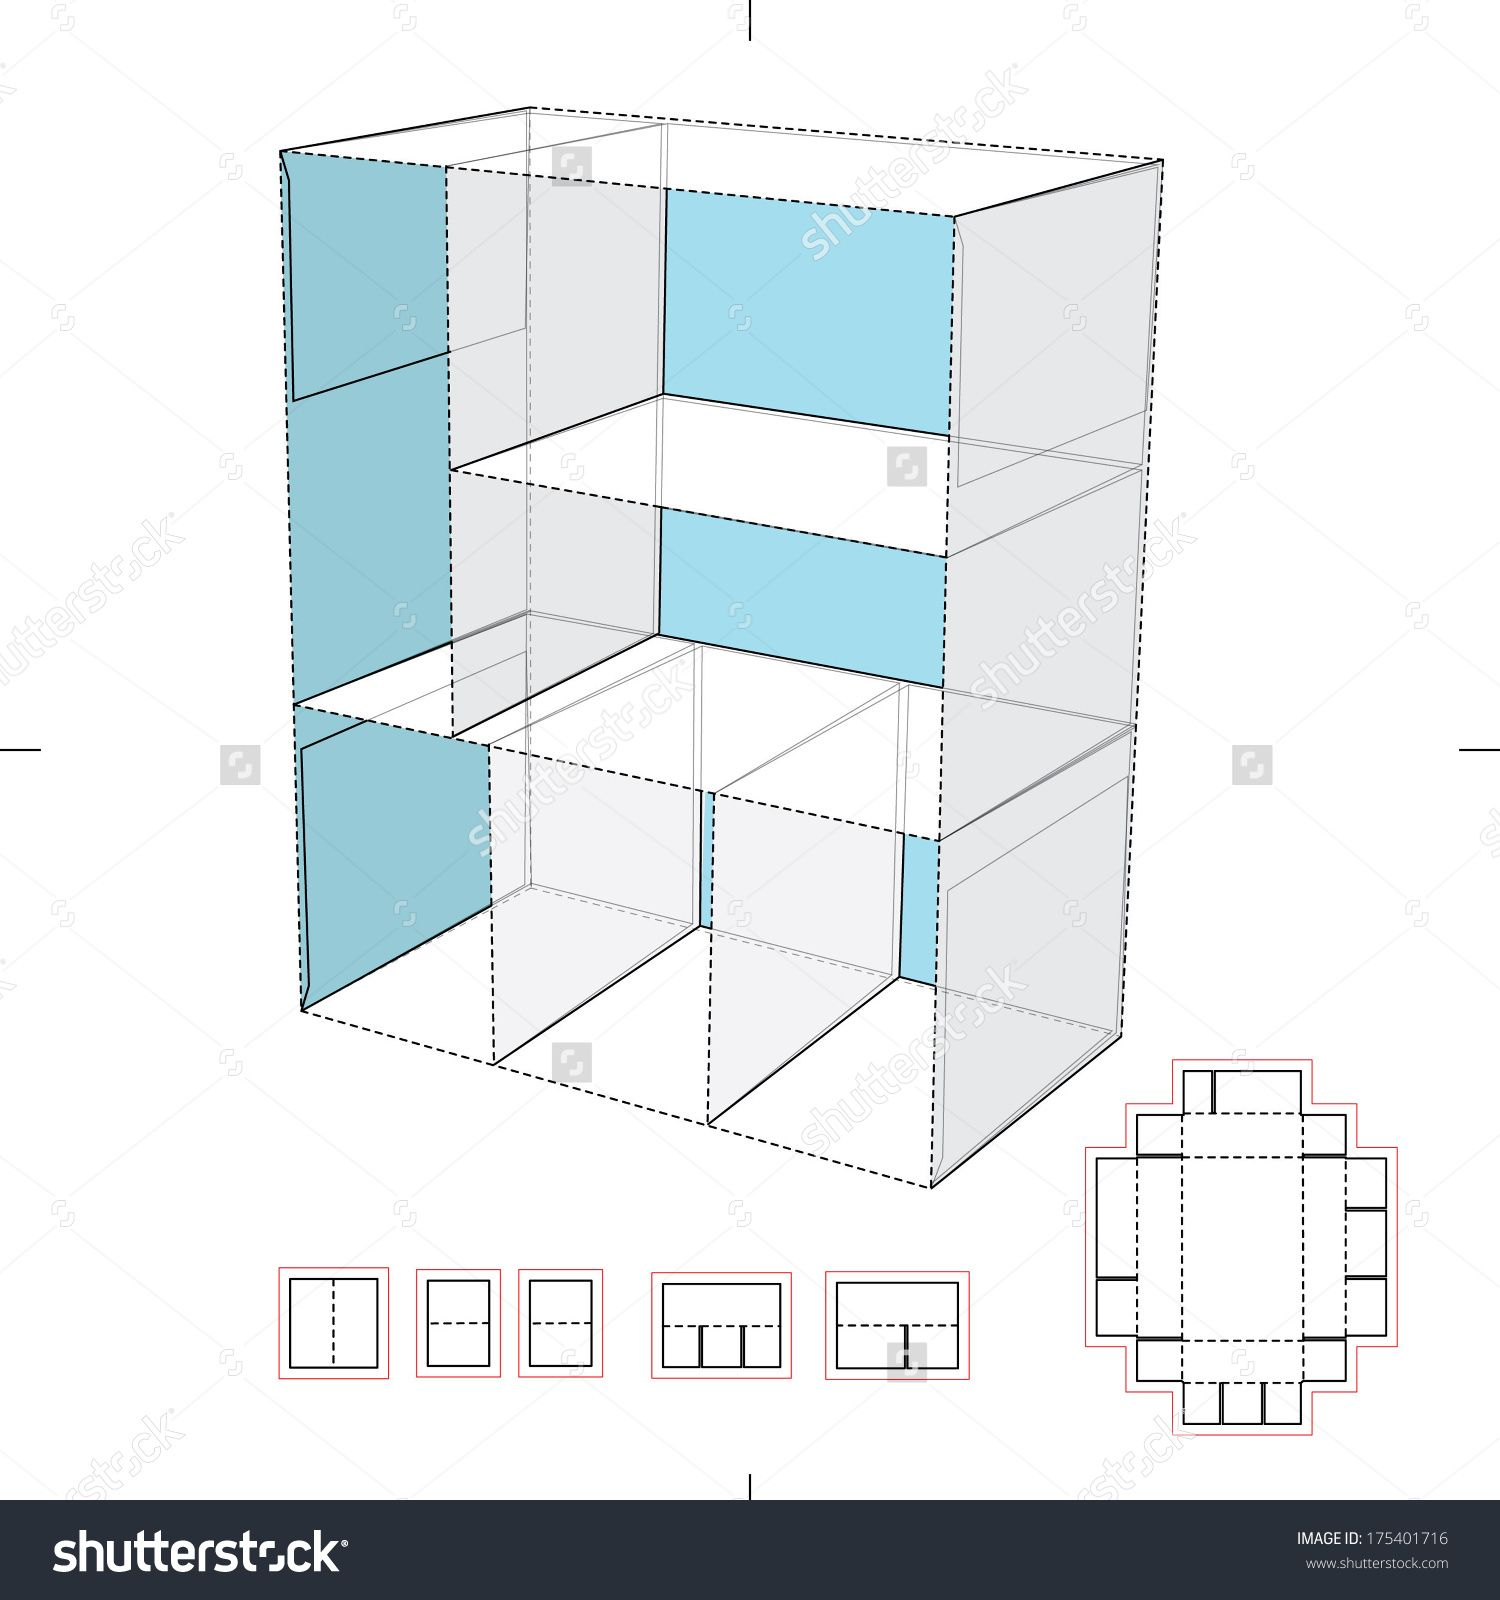 Cardboard shelf blueprint layout stock vector illustration for Imitazioni mobili design